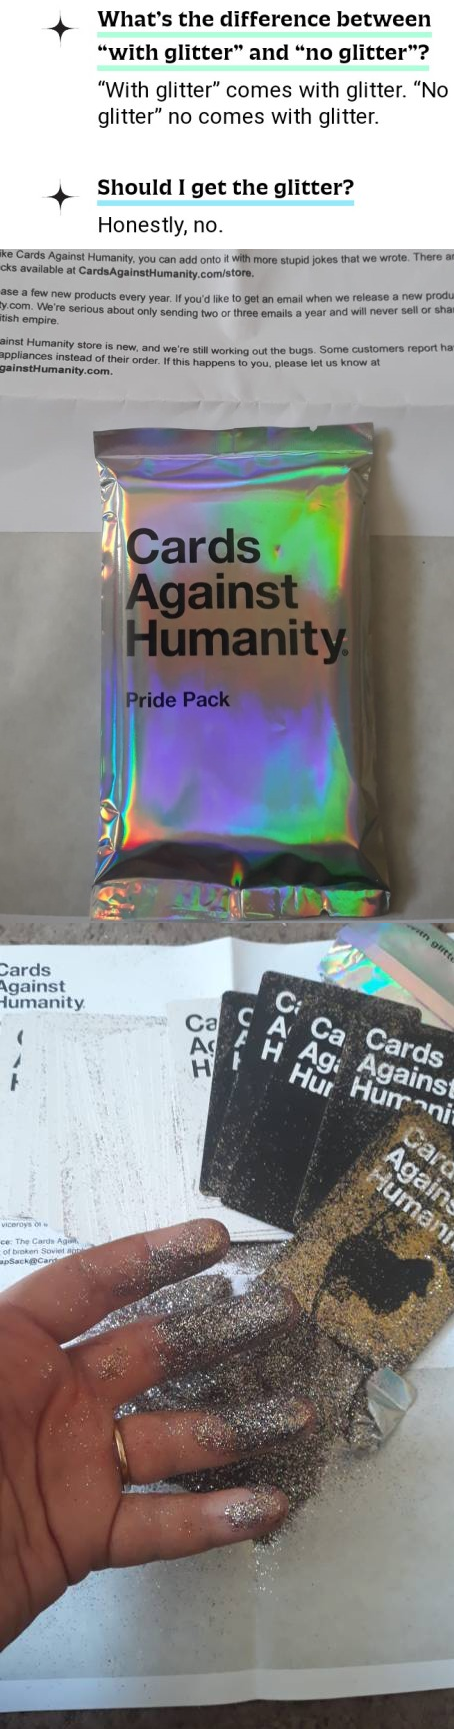 Cards Against Humanity issued a Pride pack complete with warning